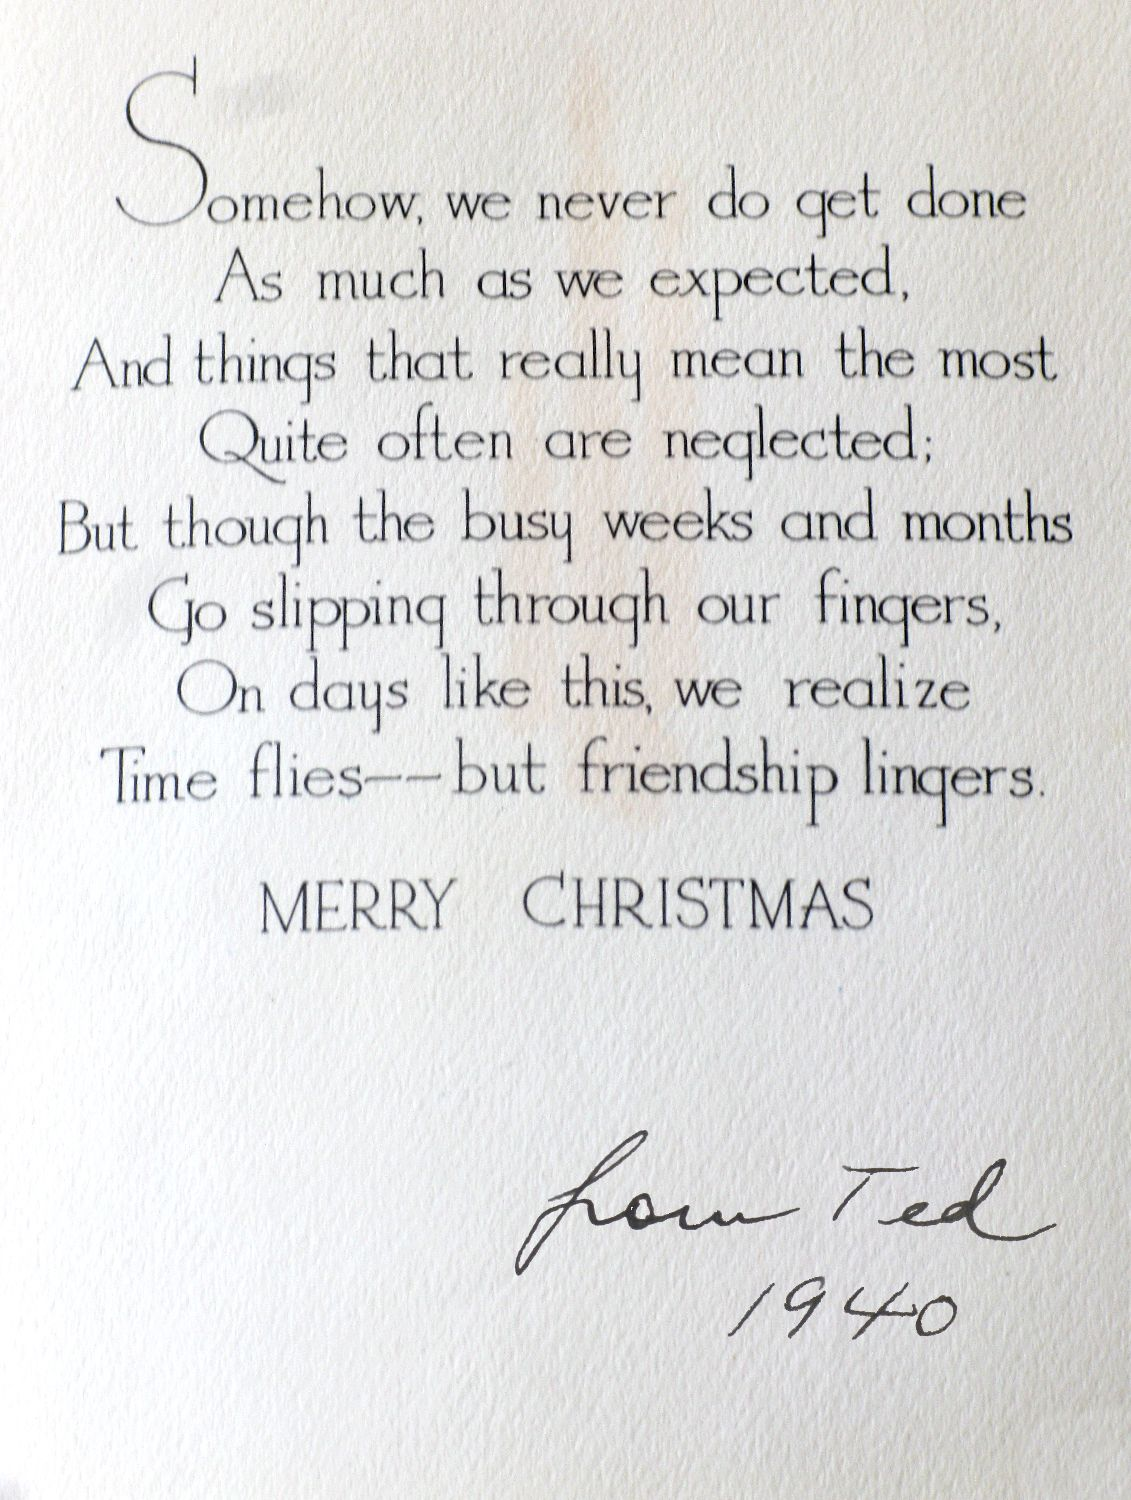 Christmascard card sayings christmas pinterest cards christmas card eddie ross found in a flea market bundle christmas decorations ideas m4hsunfo Image collections